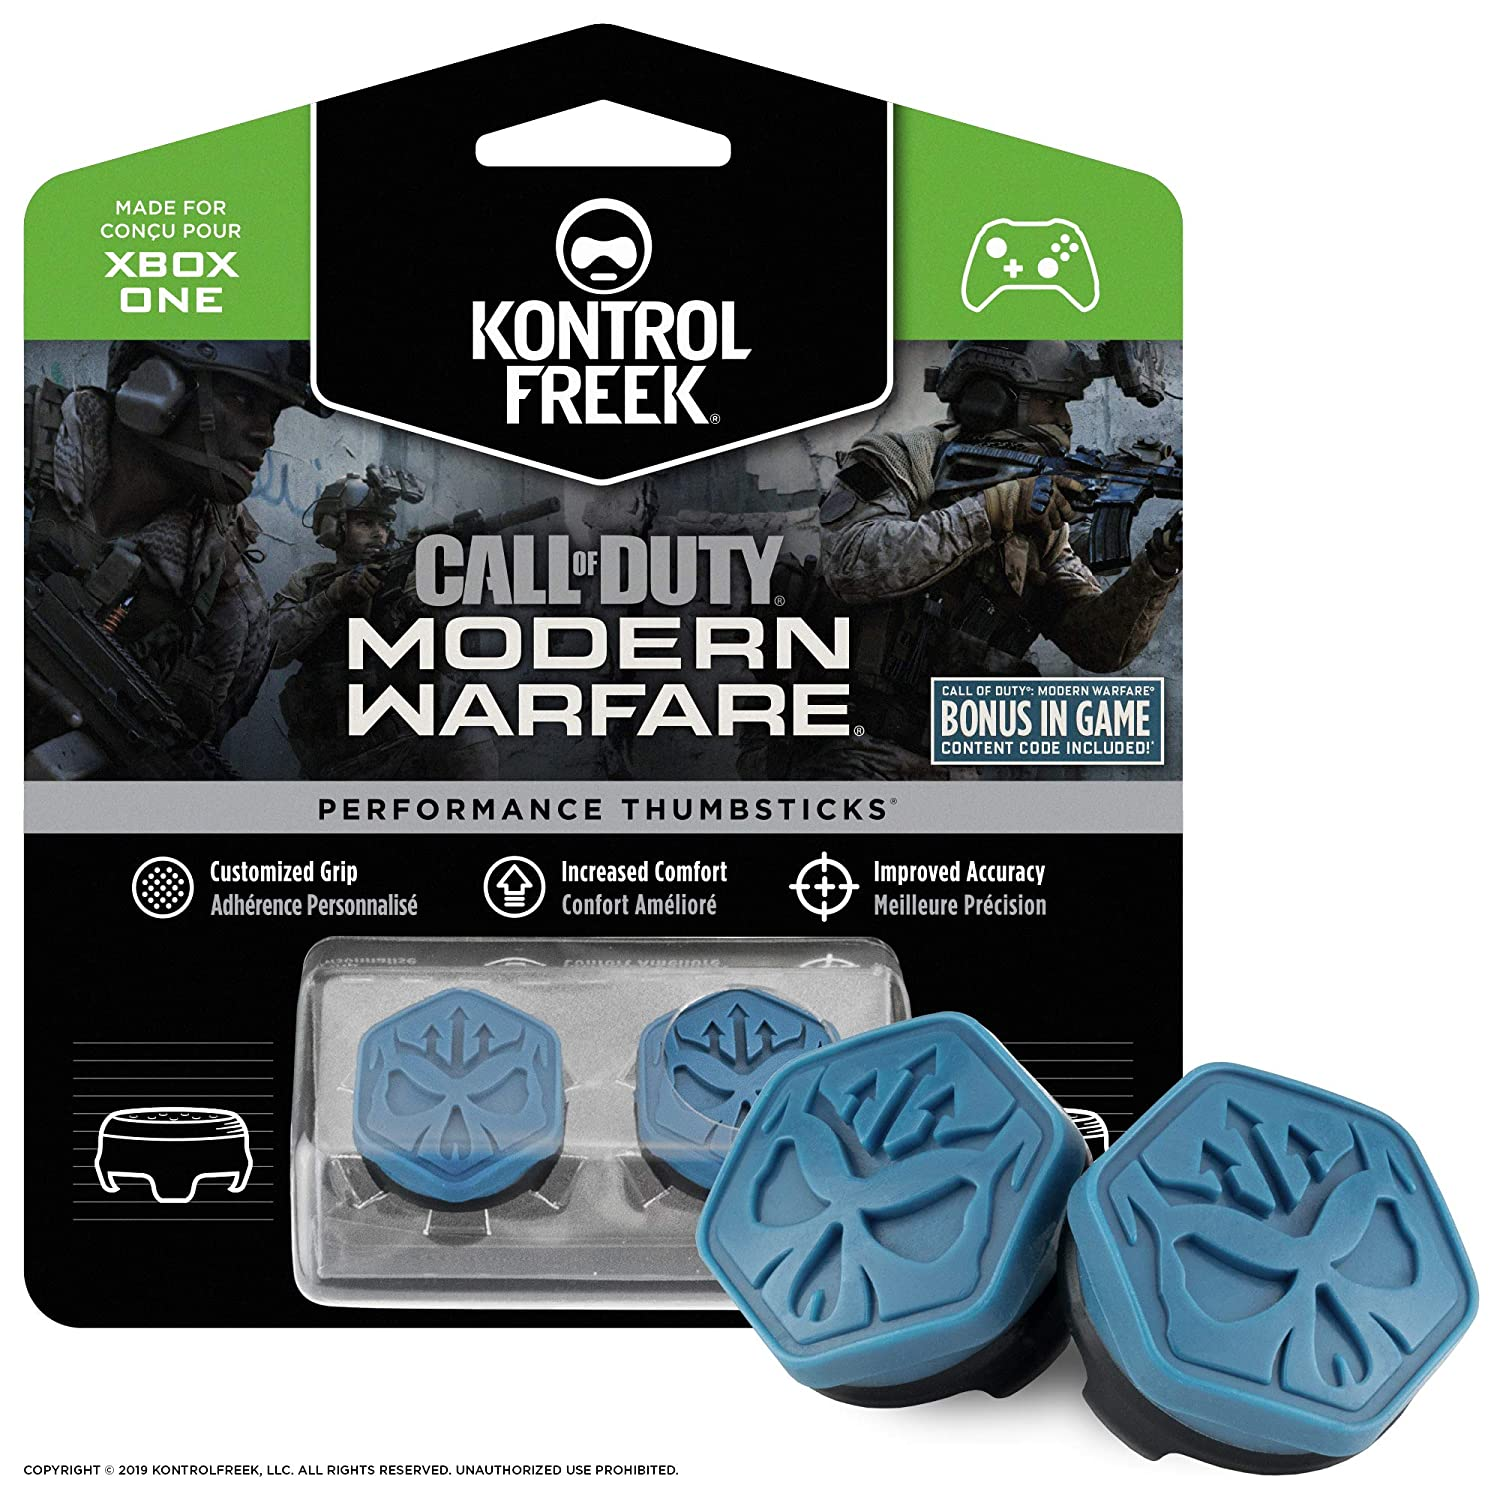 KontrolFreek Call of Duty Modern Warfare xbox one